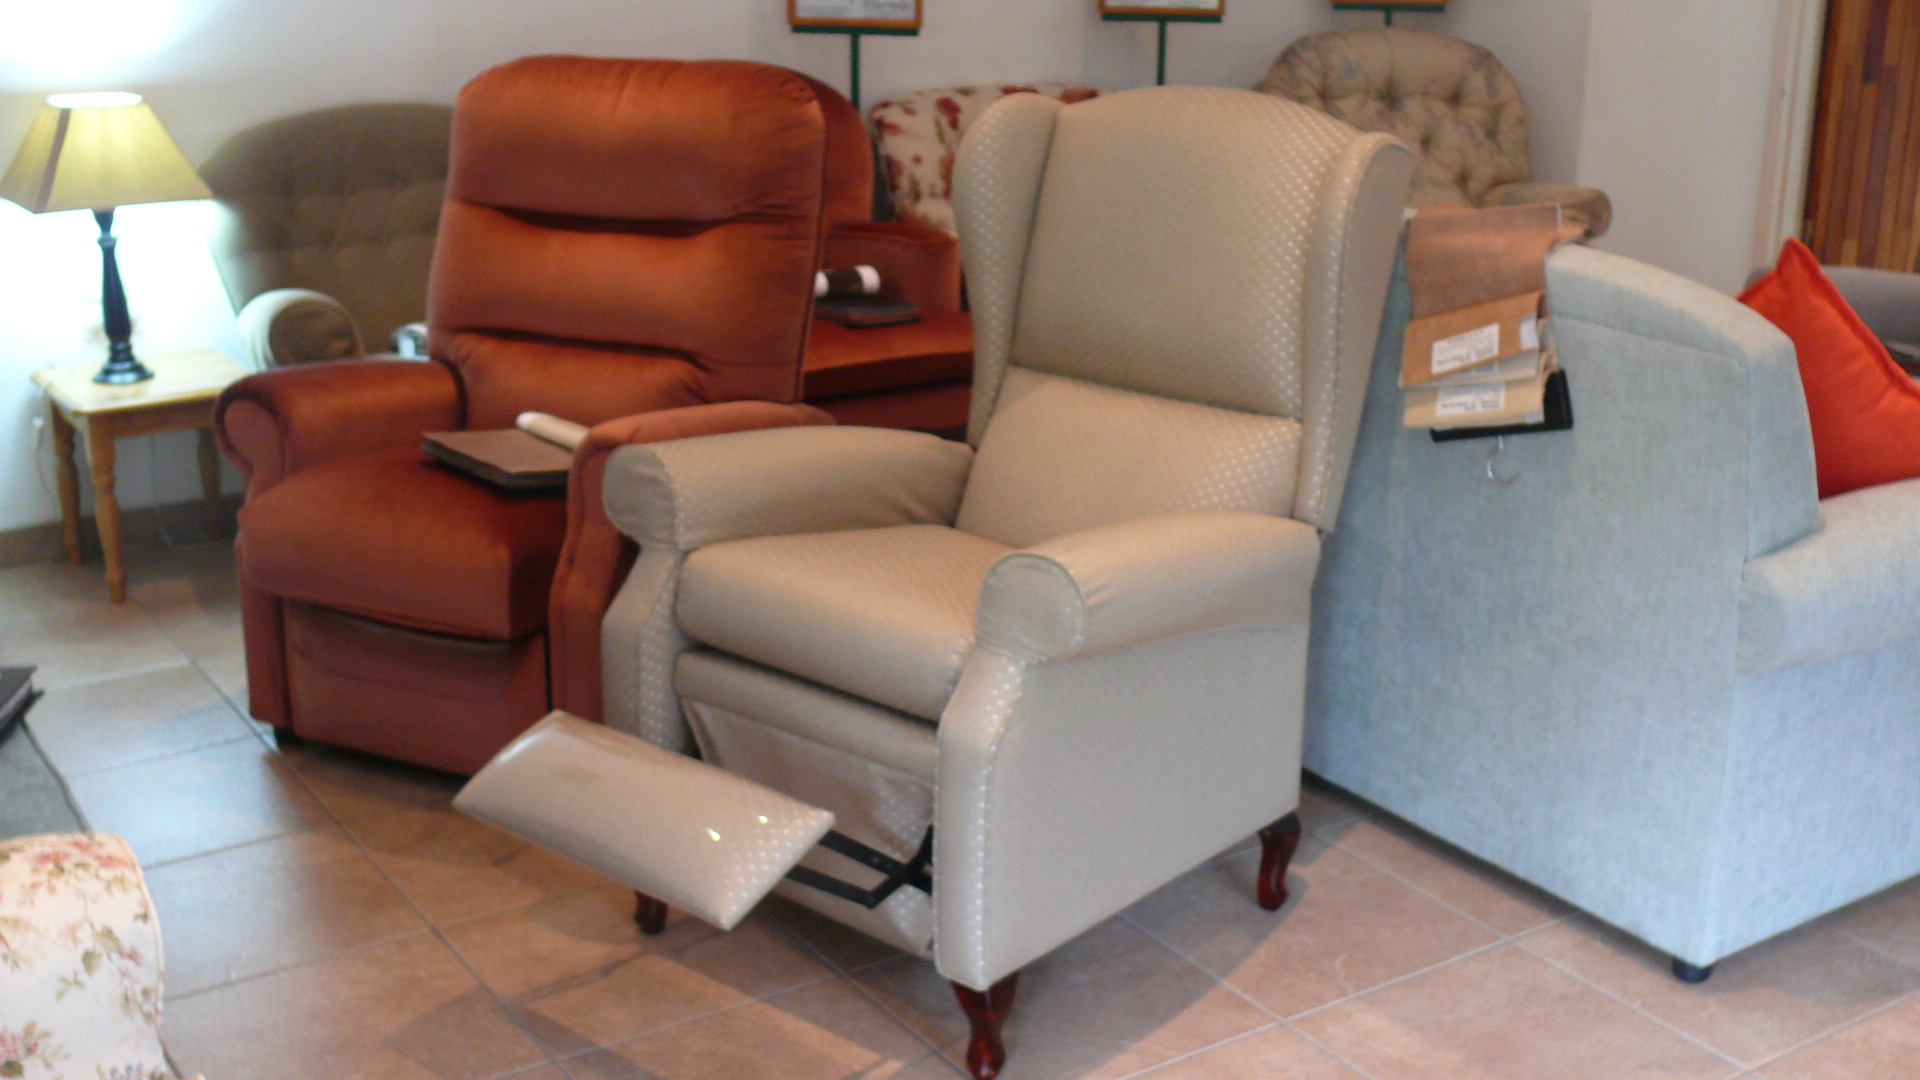 Queen Anne Chair de Villiers Home Seating Specialists